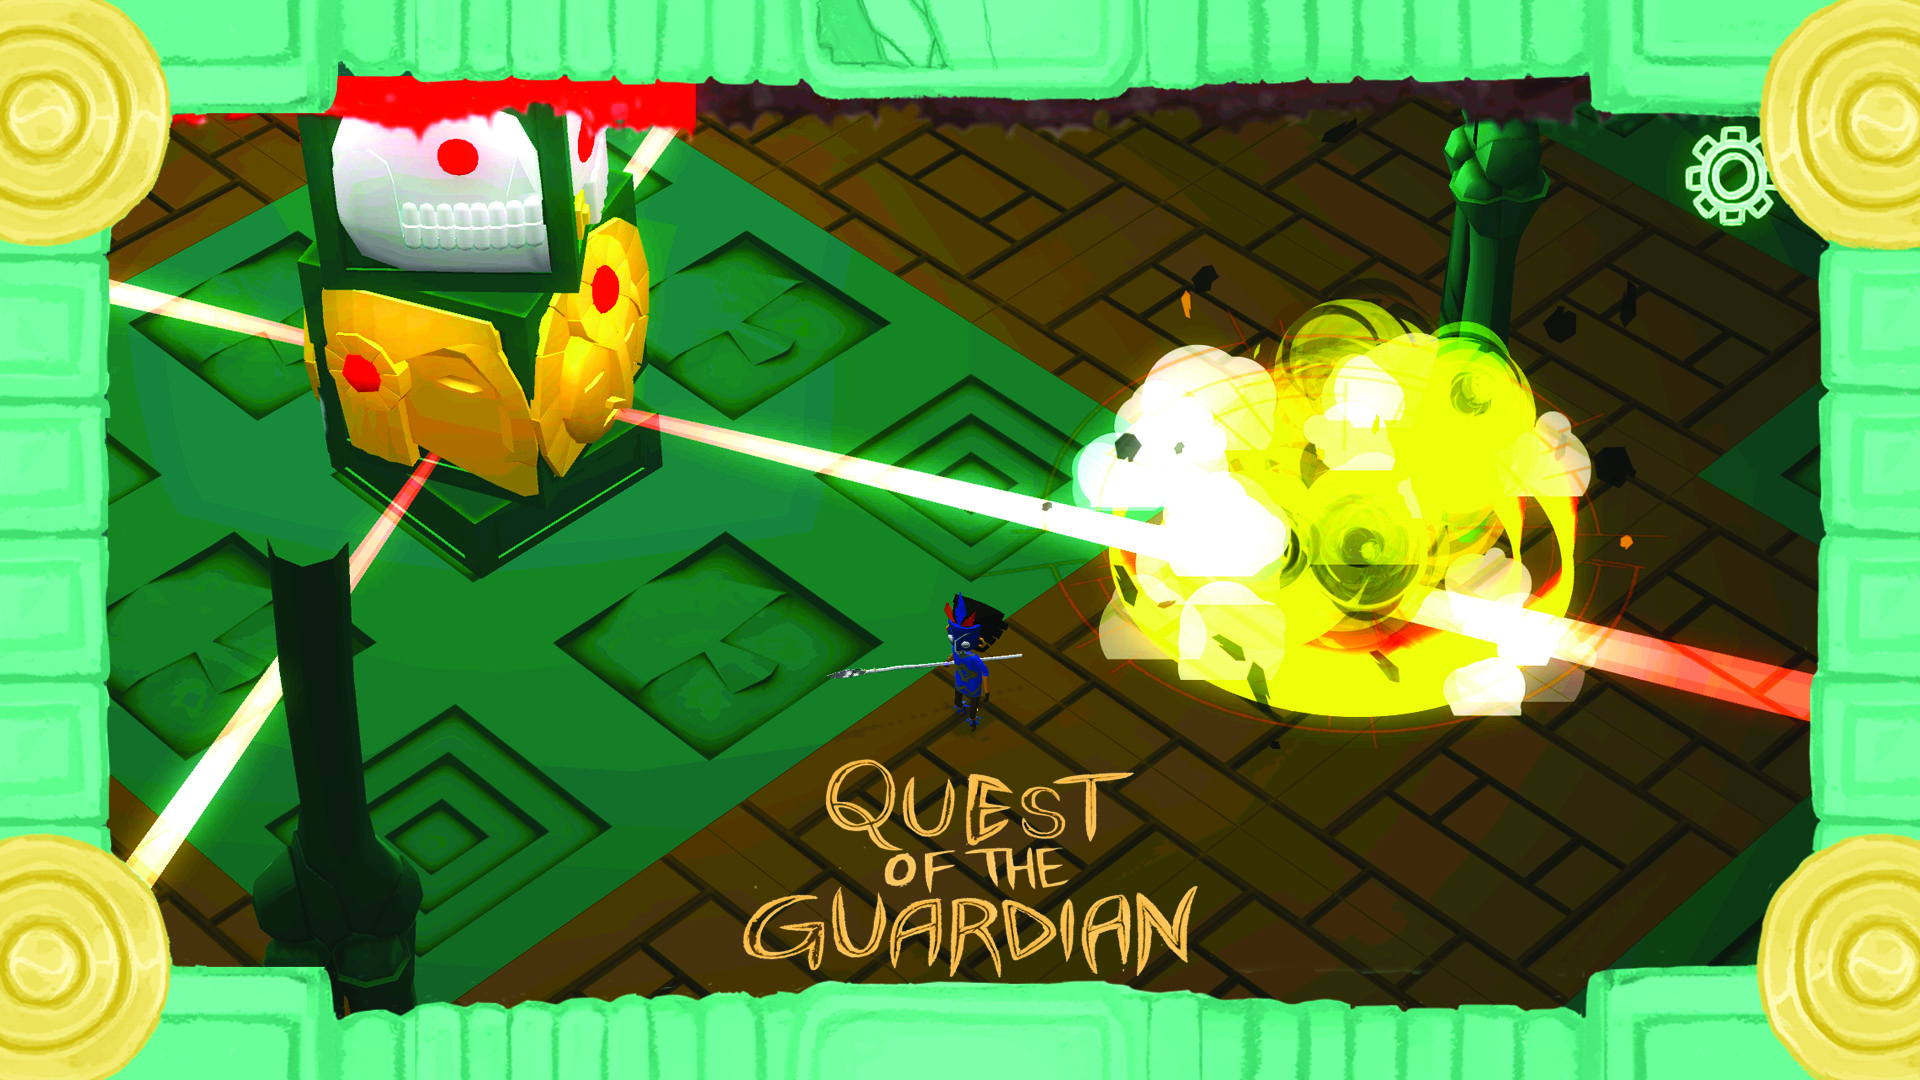 Quest of the Guardian (300dpi)